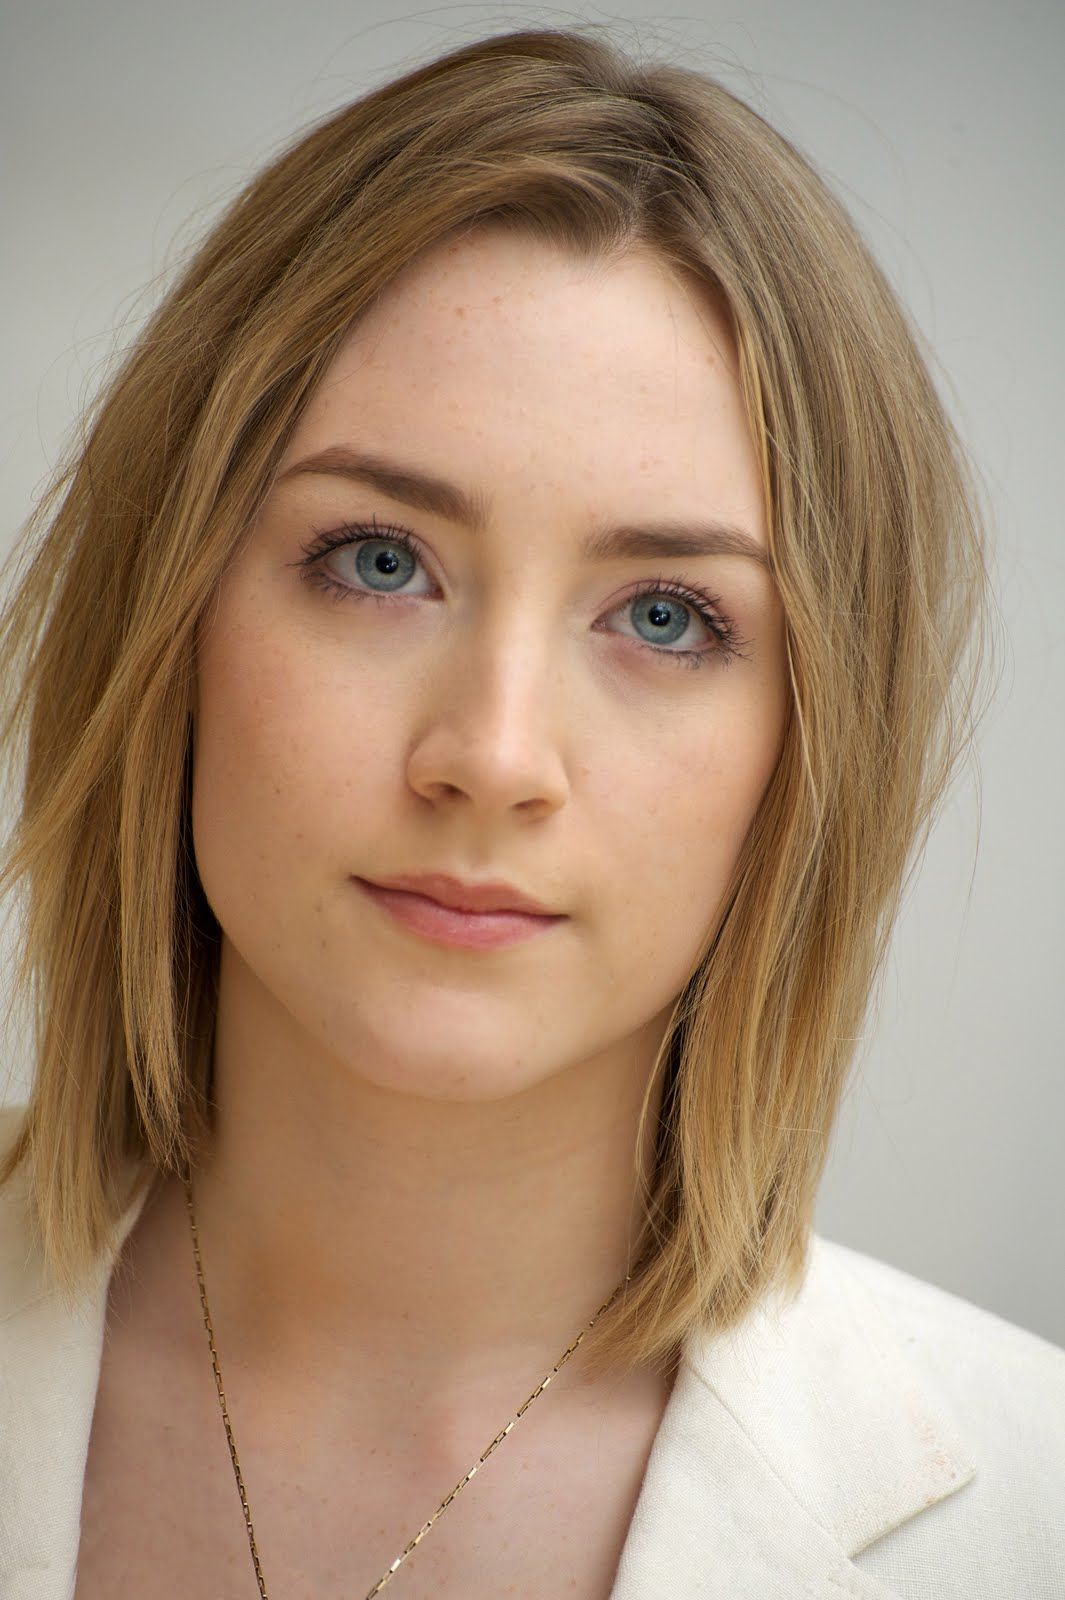 saoirse ronan atonement the lovely bones  saoirse ronan 1994 atonement 2007 the lovely bones 2009